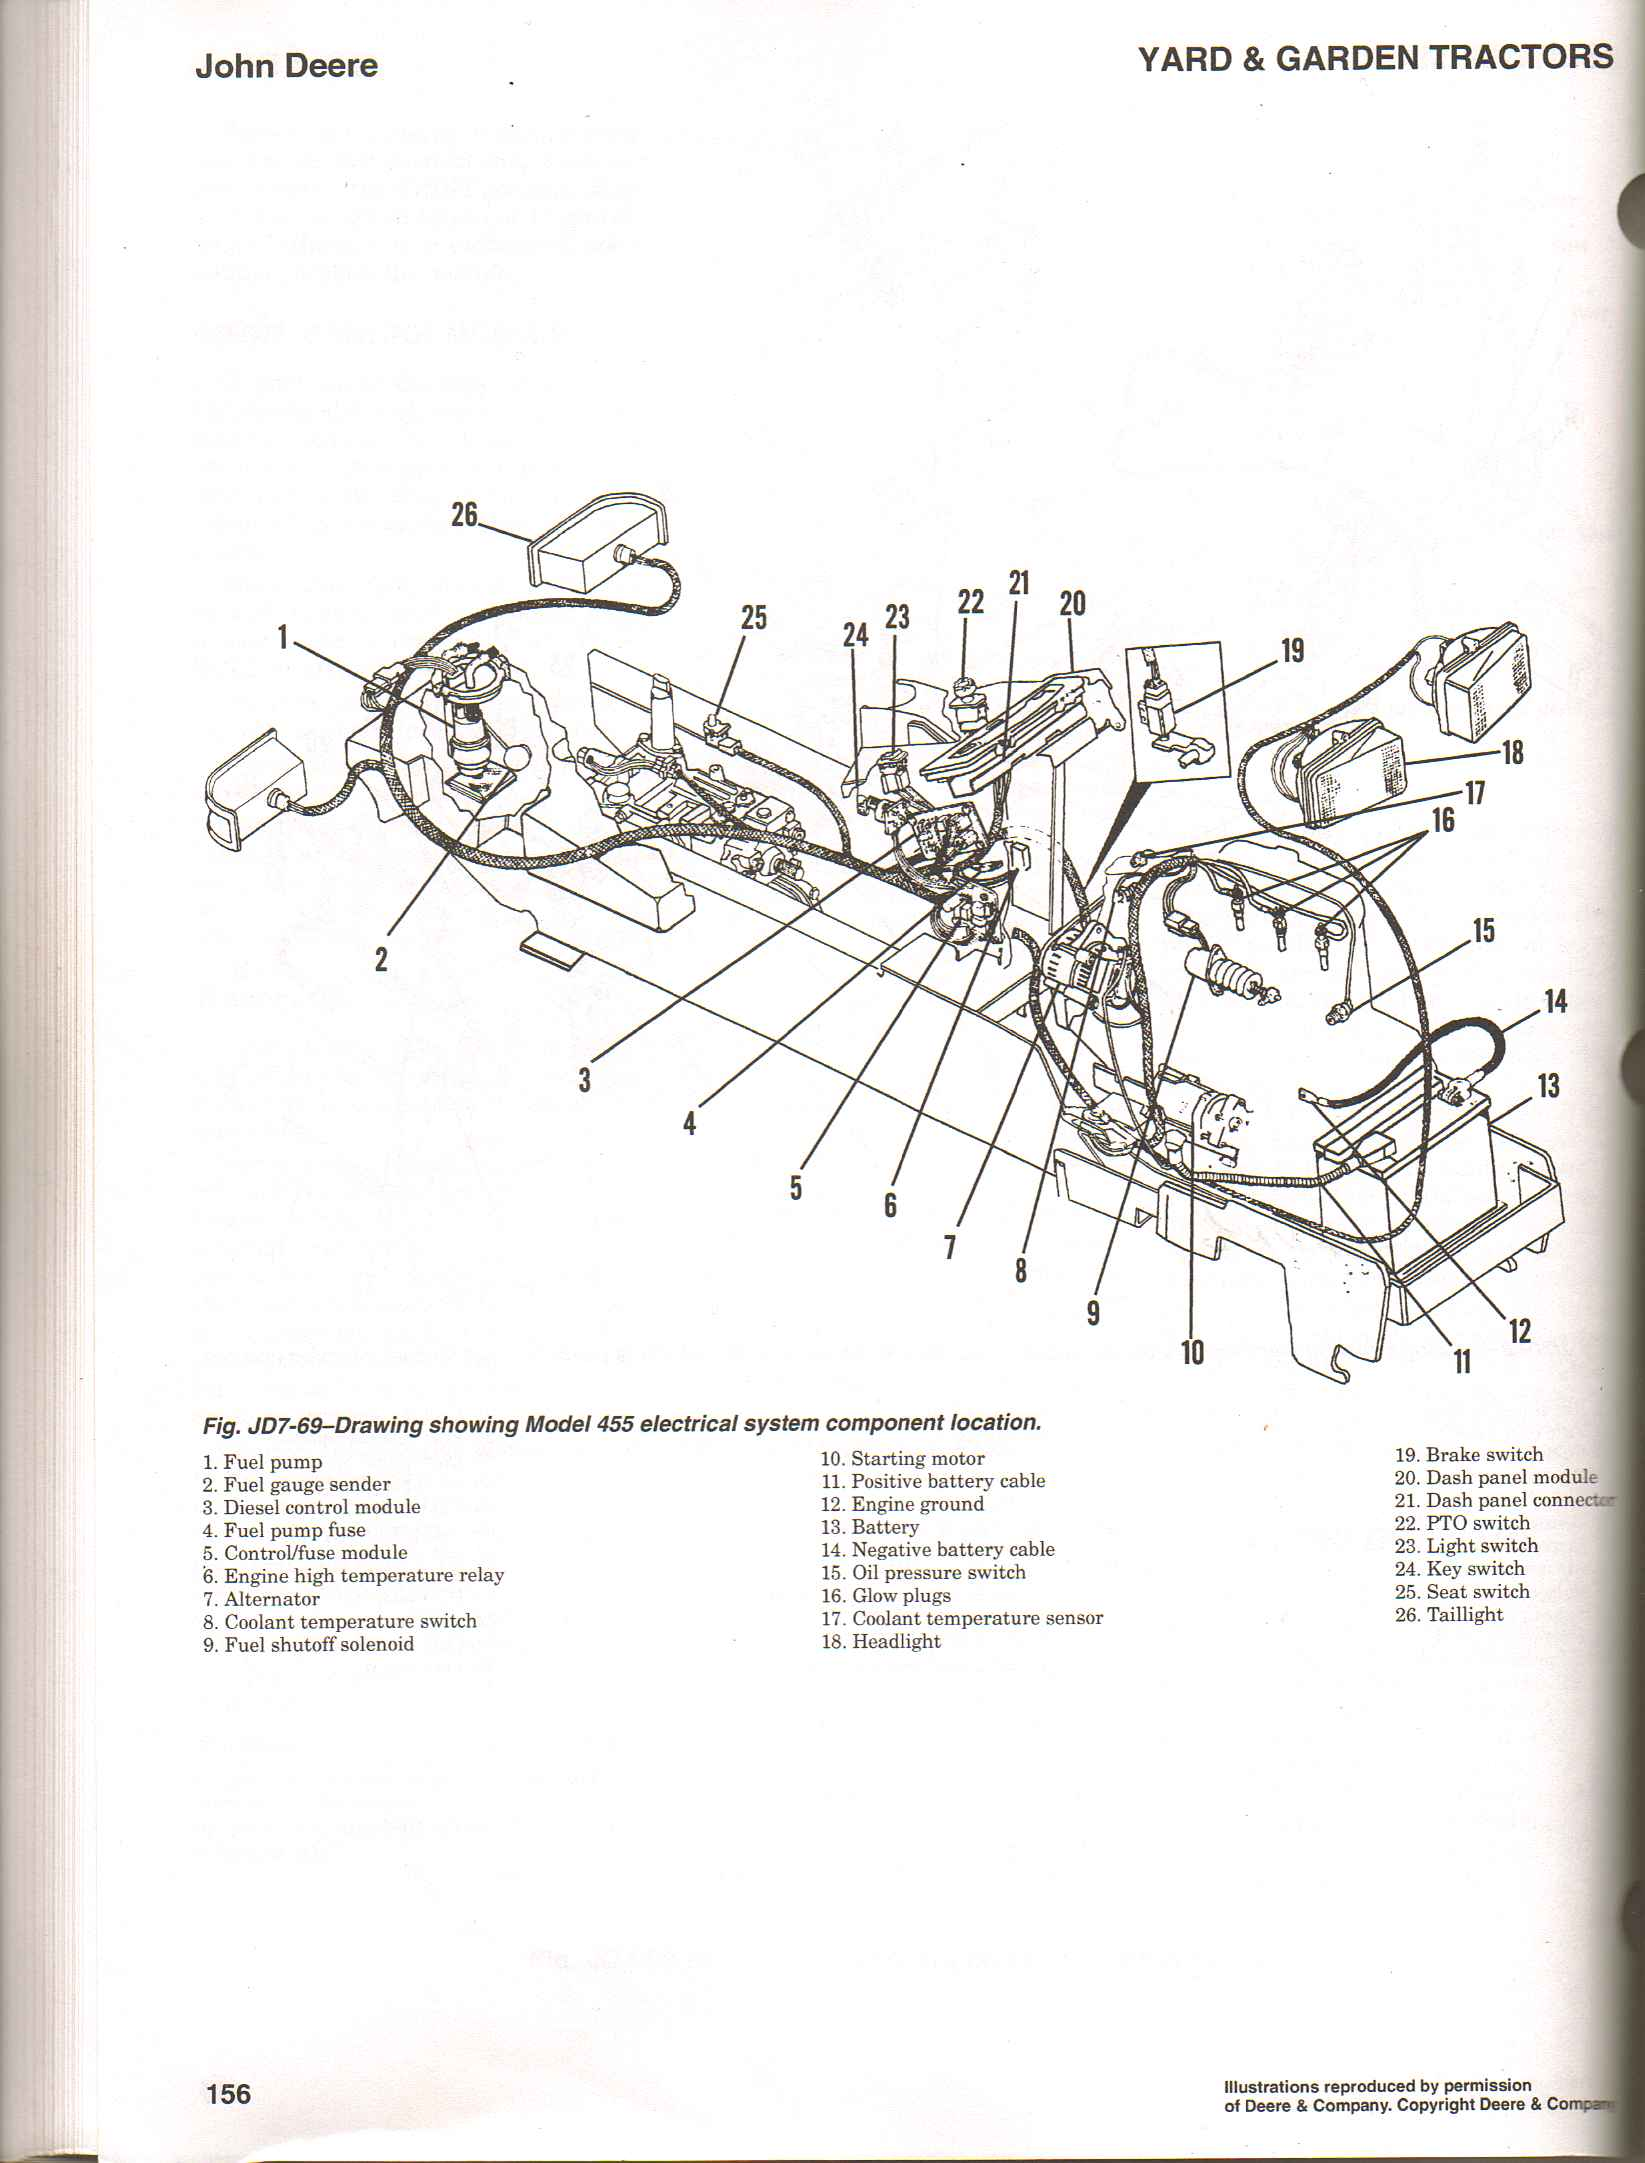 John Deere 455 Wiring Schematics Free Diagram For You 425 Lawn Tractor Mower I Have A Diesel J D While Mowing It Died Now When 445 Schematic Fuel Pump